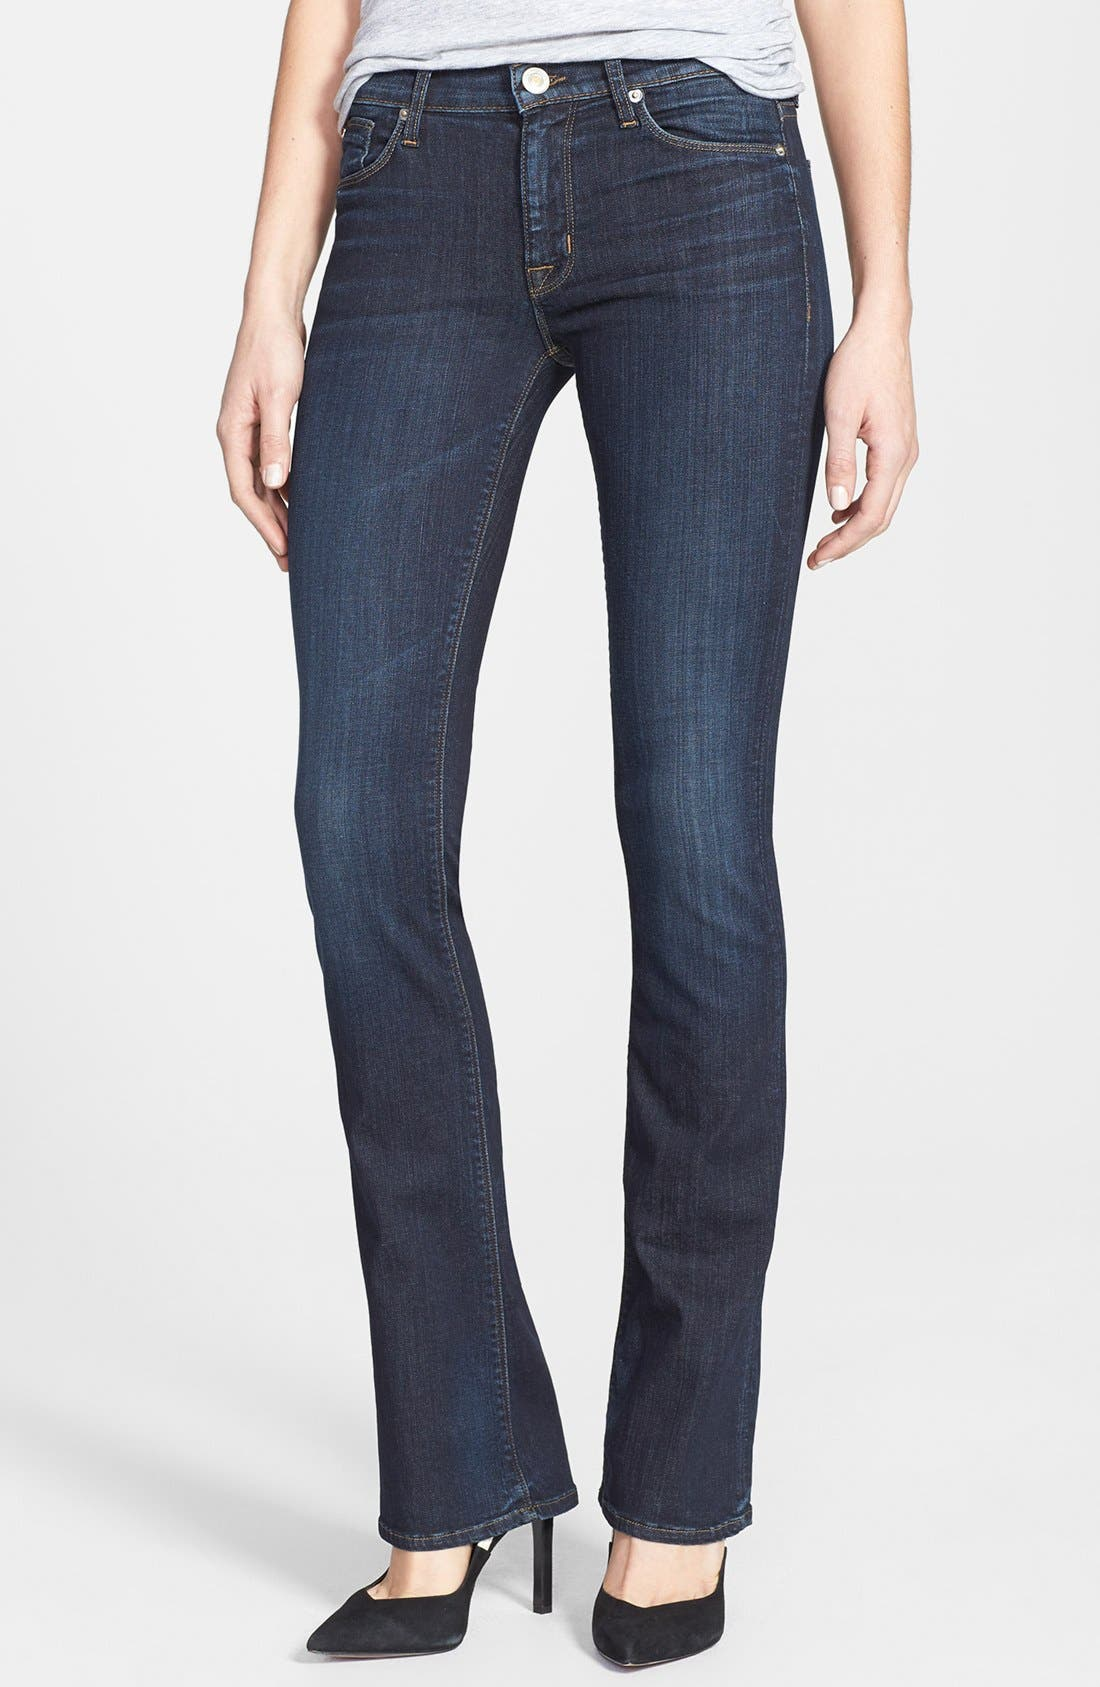 Alternate Image 1 Selected - Hudson Jeans 'Love' Mid Rise Bootcut Jeans (Shirley)